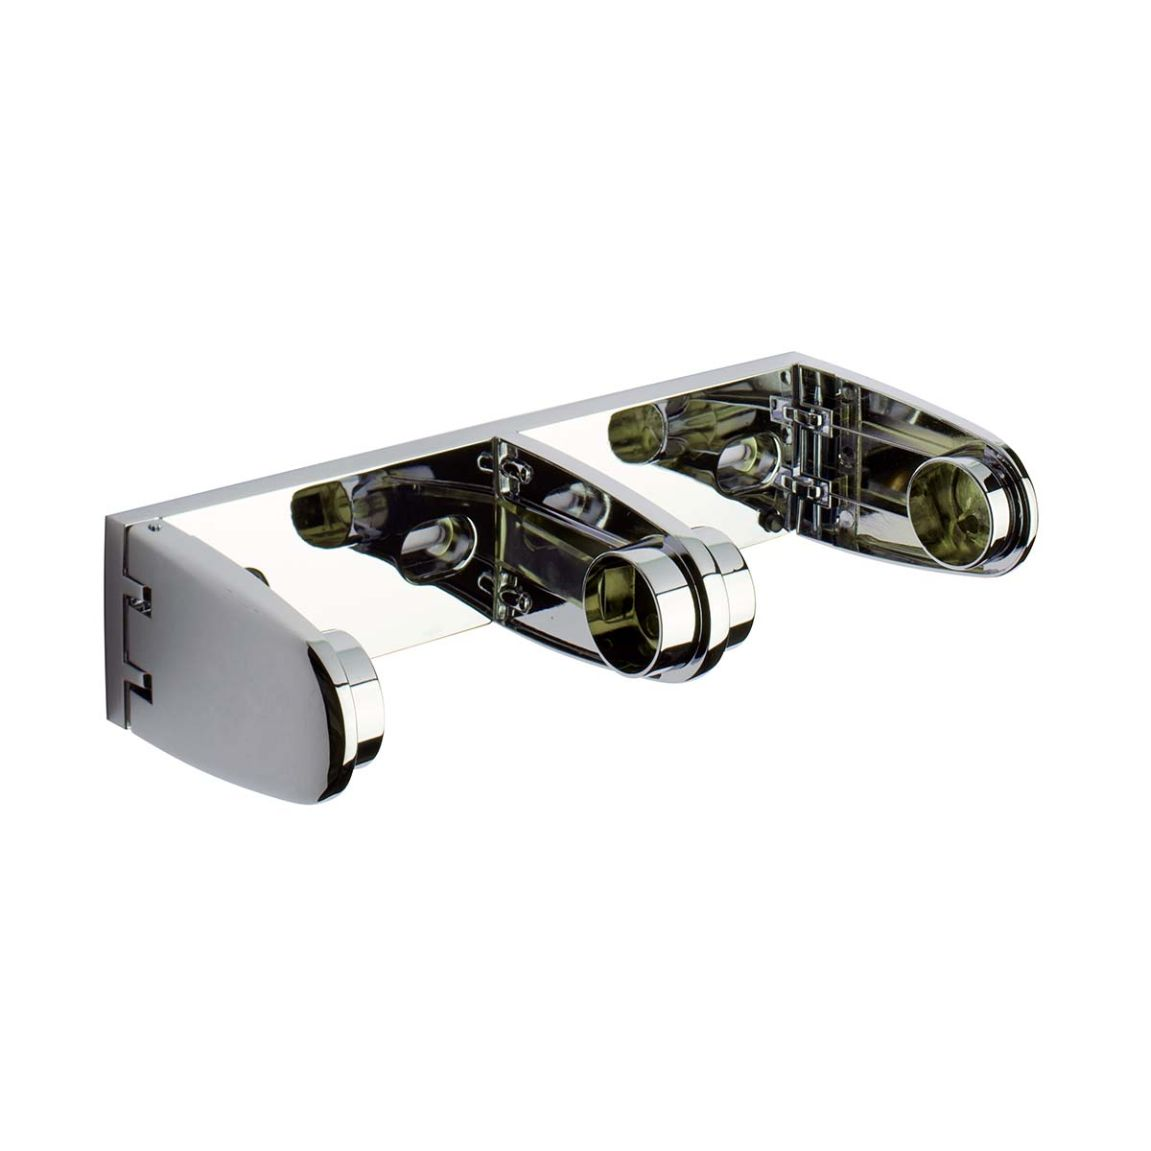 Surface Mount Deluxe Double Paper Roll Holder - Polished Chrome Plated Zamac